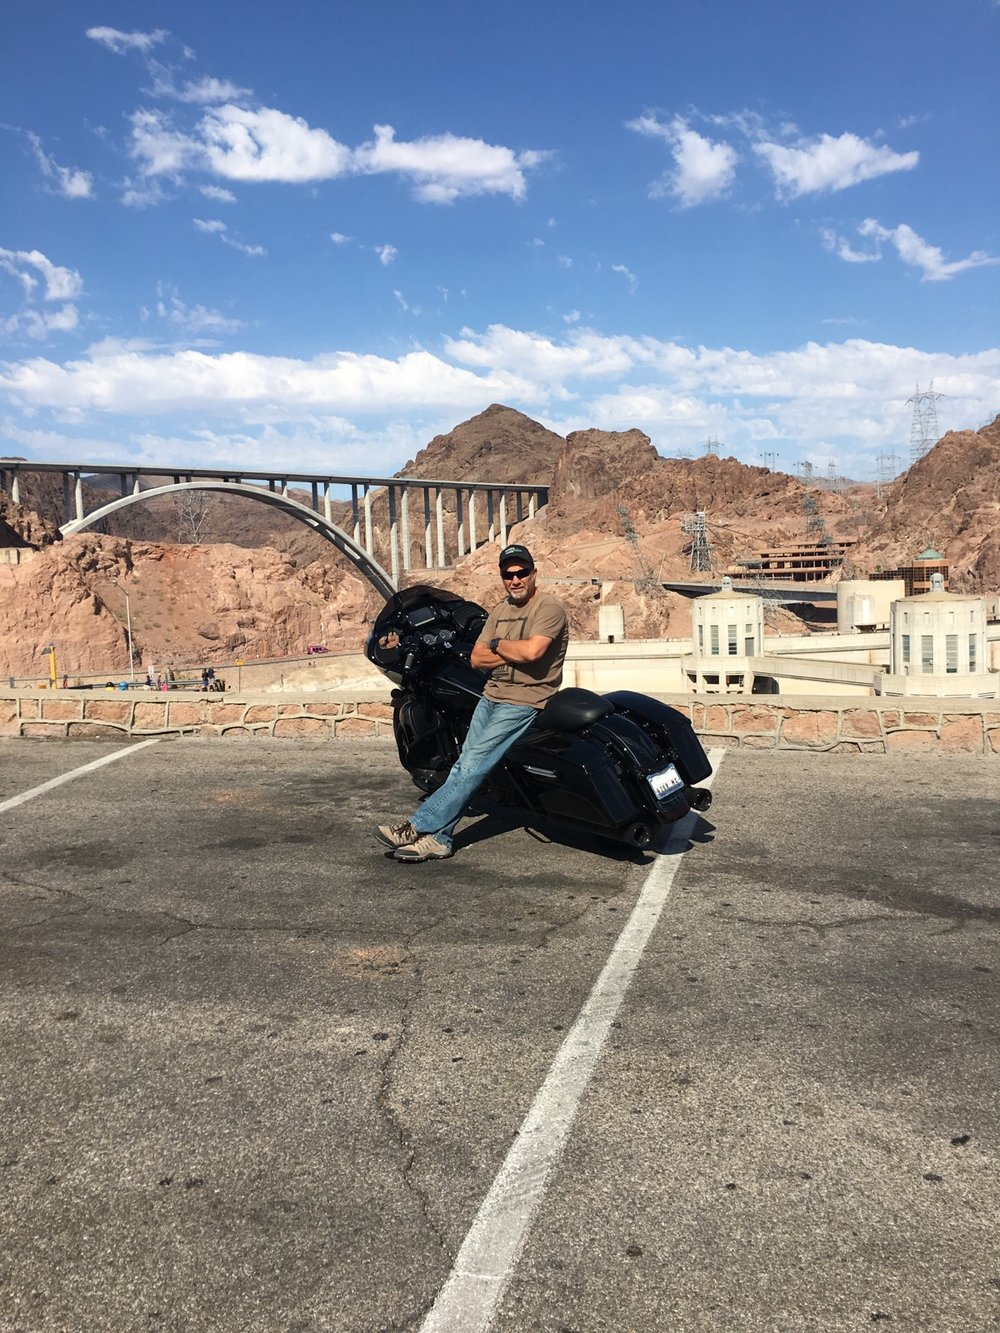 Marc purchased his new Road Glide Ultra from Southeast Custom Cycles and is out enjoying it at the Hoover Dam.